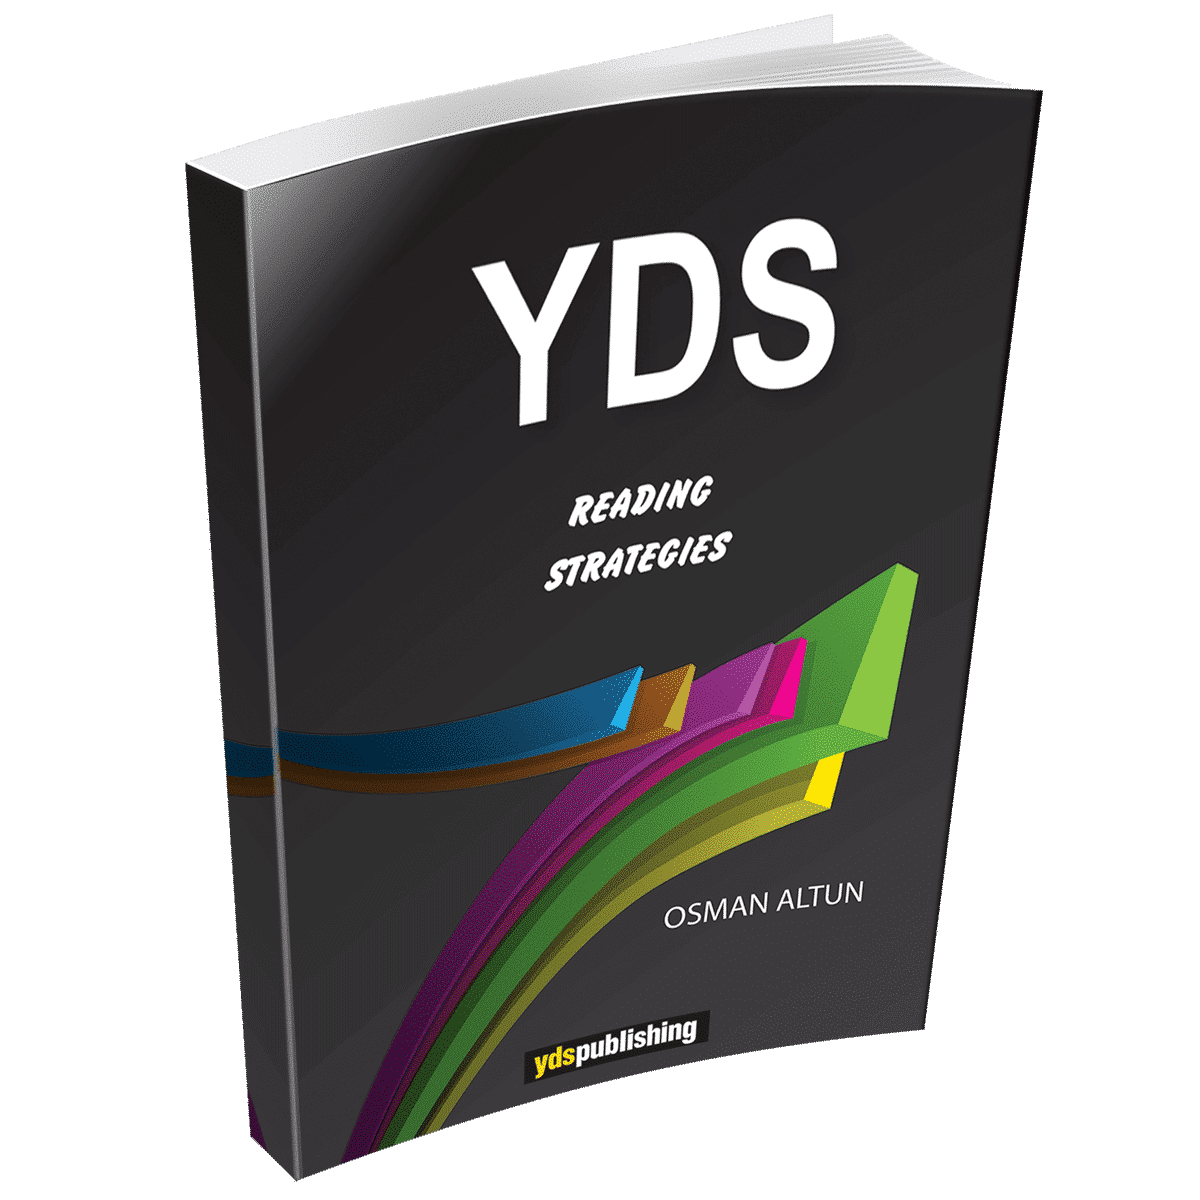 YDS Reading Strategies yds reading strategies YDS Reading Strategies reading strategies 001 min 1200x1200